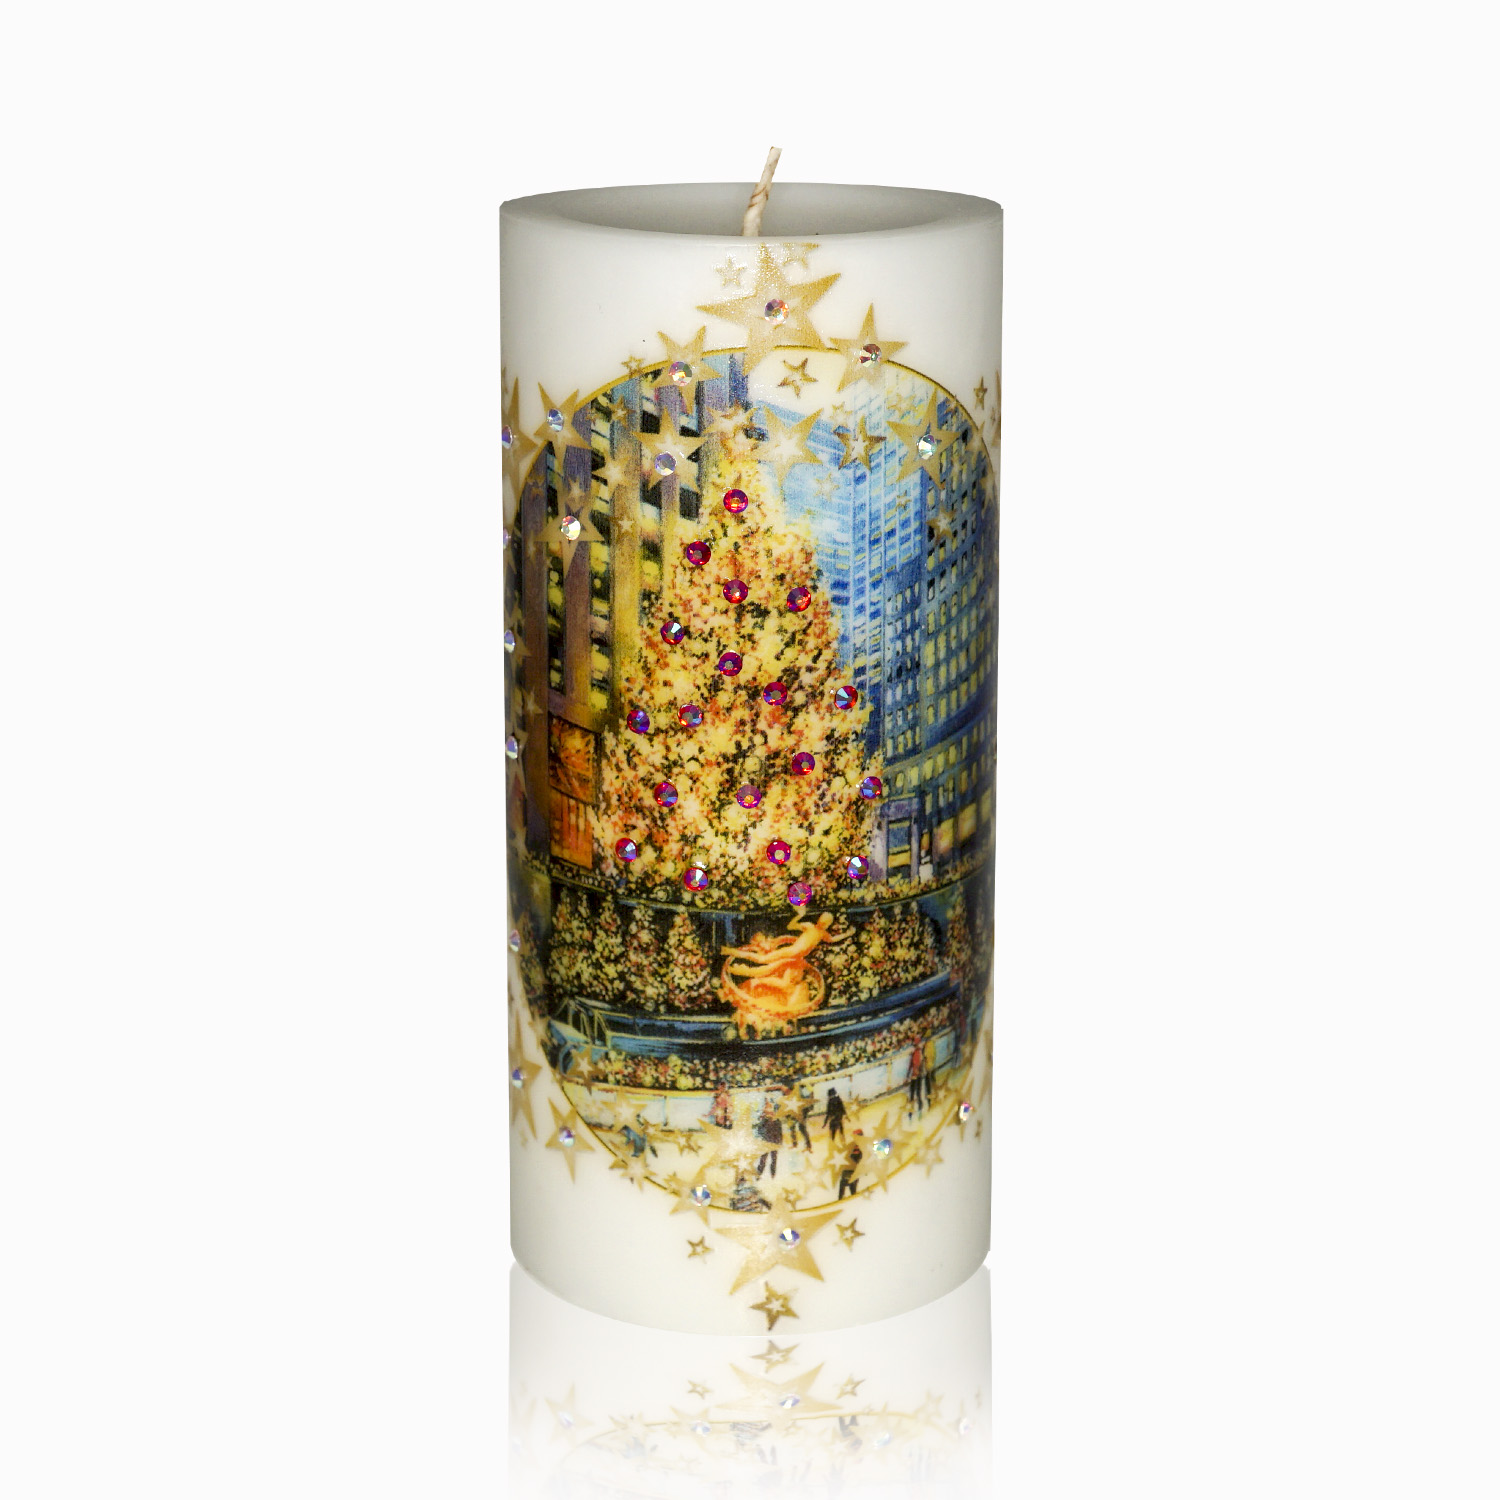 Luxury Christmas Pillar Candle – Rockefeller Center Christmas Tree with Skating Rink Hand-printed with Rhinestones